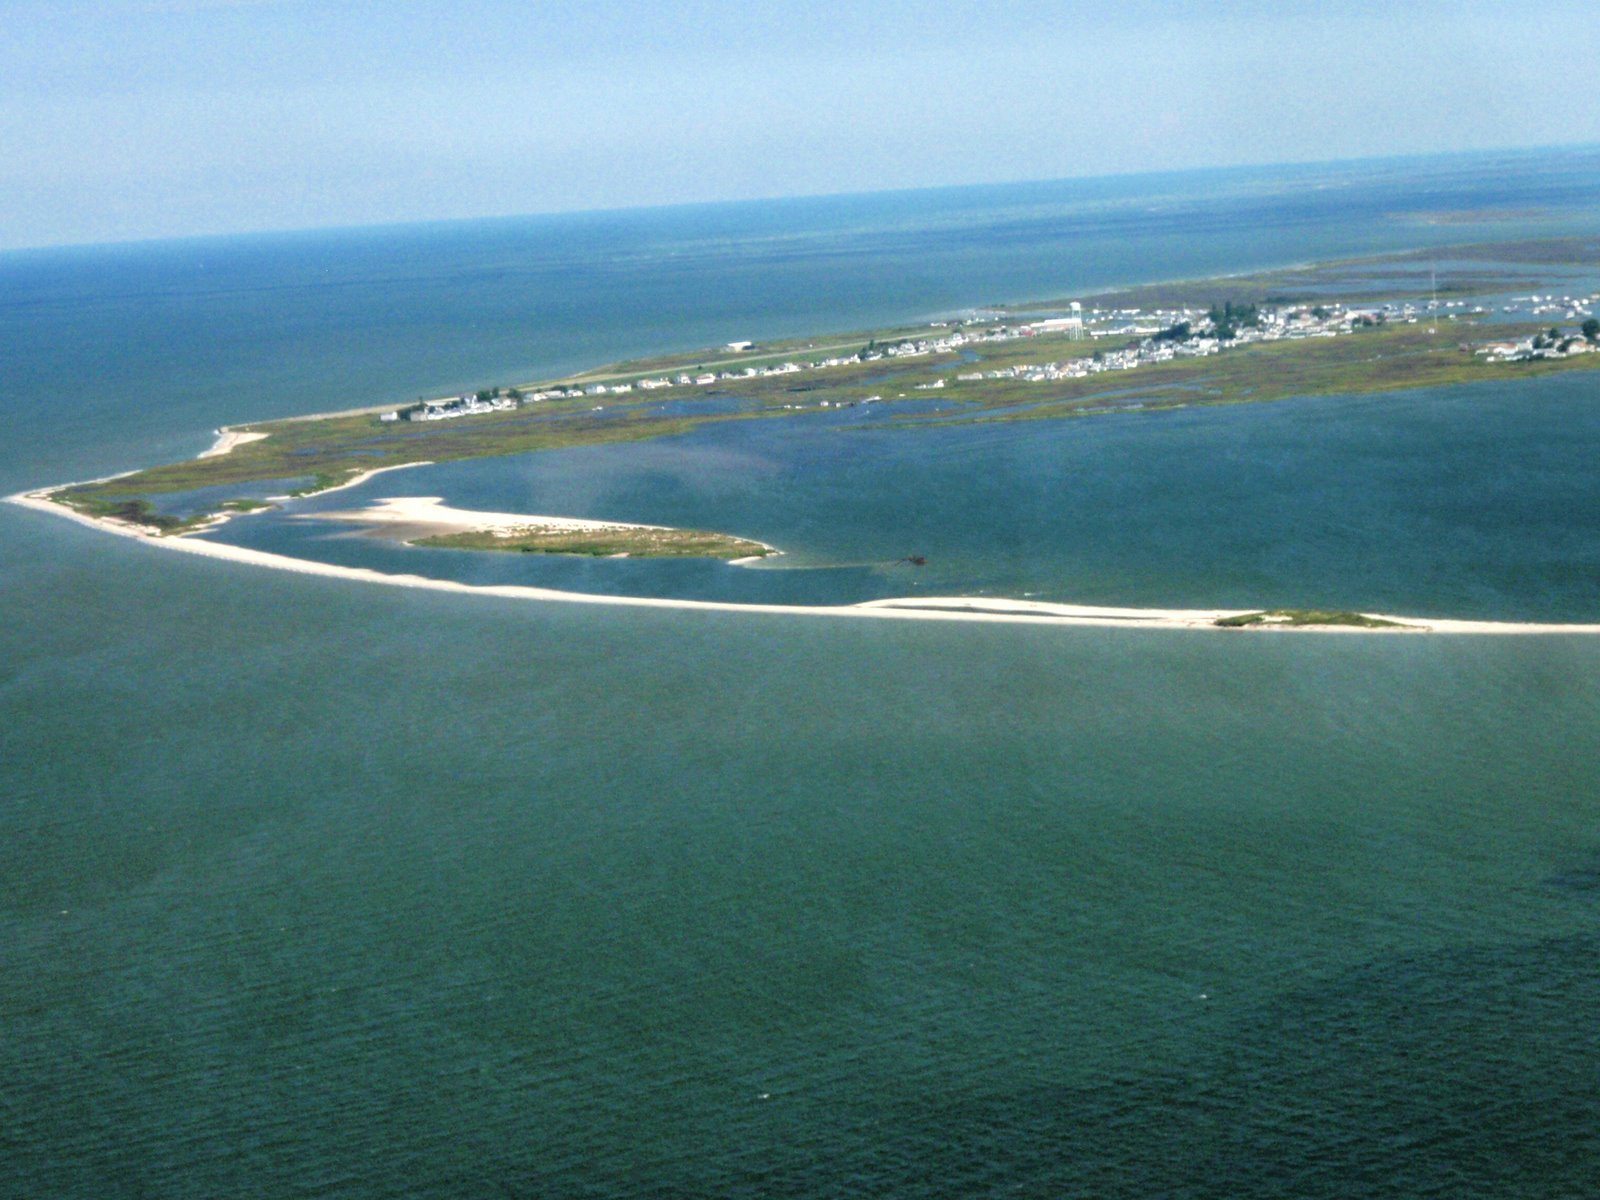 5193726680 as well Tangier Is An Island moreover On An Island in addition Tangier A Tiny Island In The Stream Hits The Big Time furthermore . on tangier island map